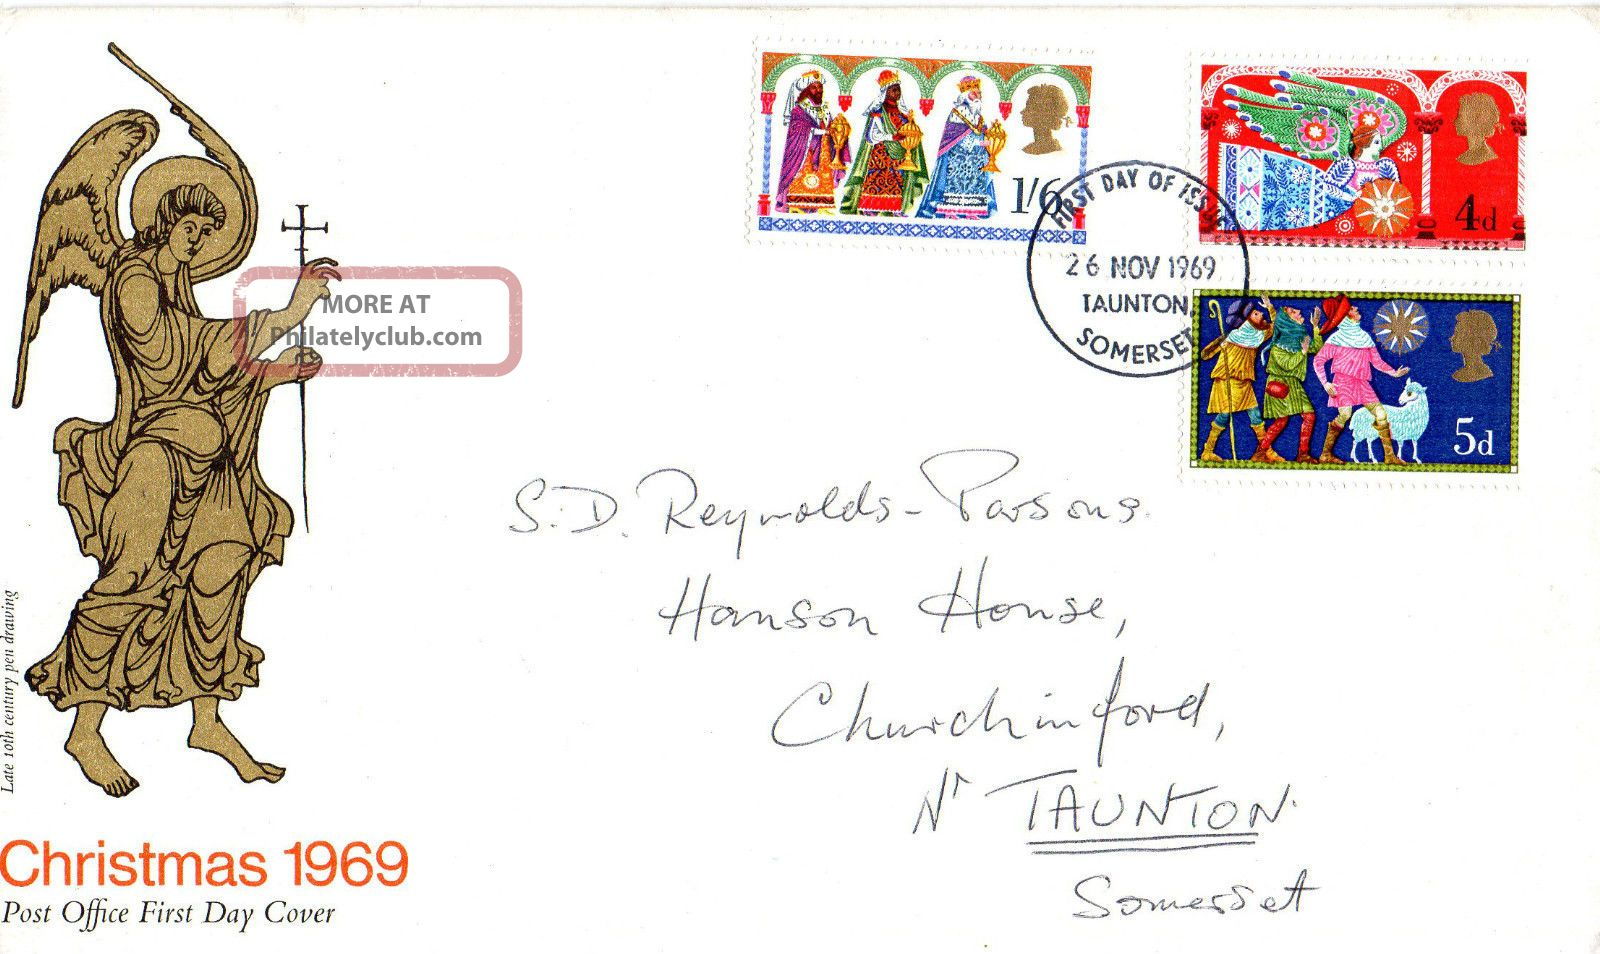 26 November 1969 Christmas Post Office First Day Cover Taunton Somerset Fdi Topical Stamps photo